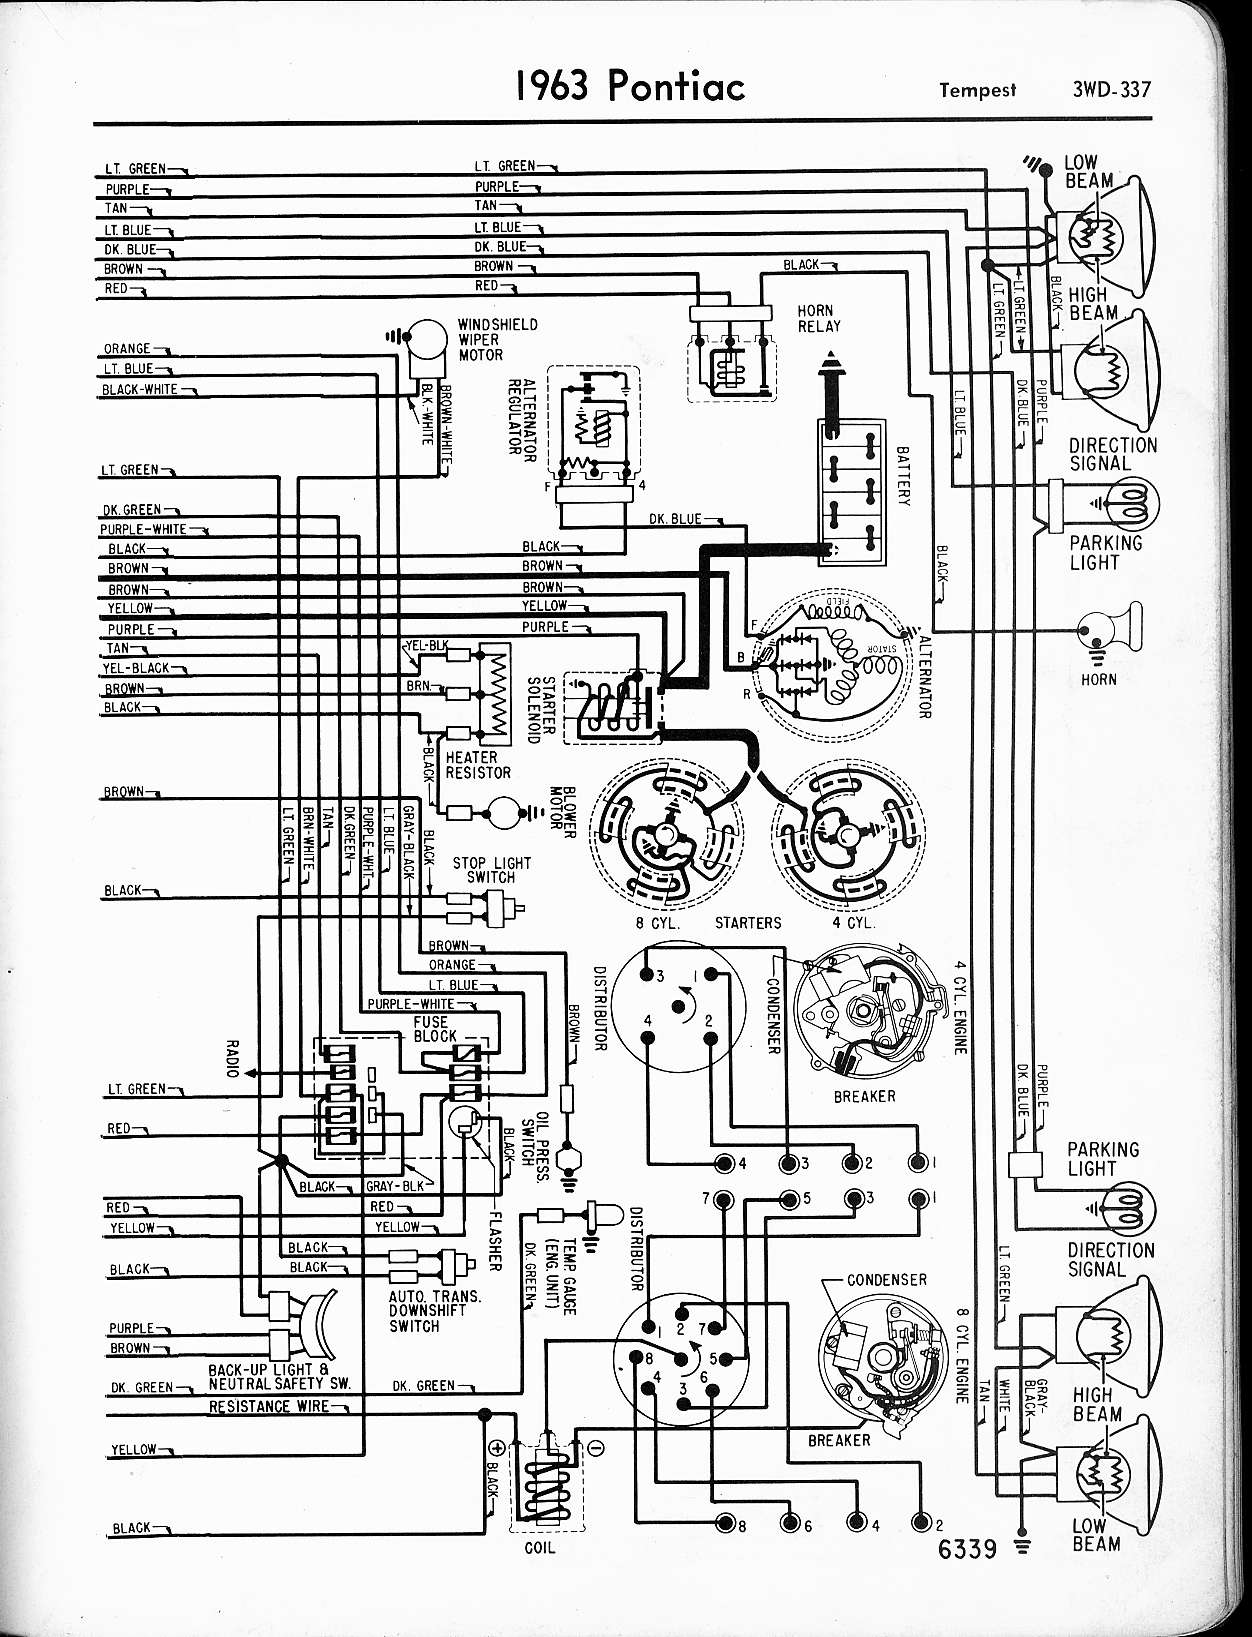 2004 Pontiac Gto Wiring Schematic Real Diagram G6 Tail Light Pictures U2022 Rh Mapavick Co Uk 1992 Sunfire 2006 Stereo